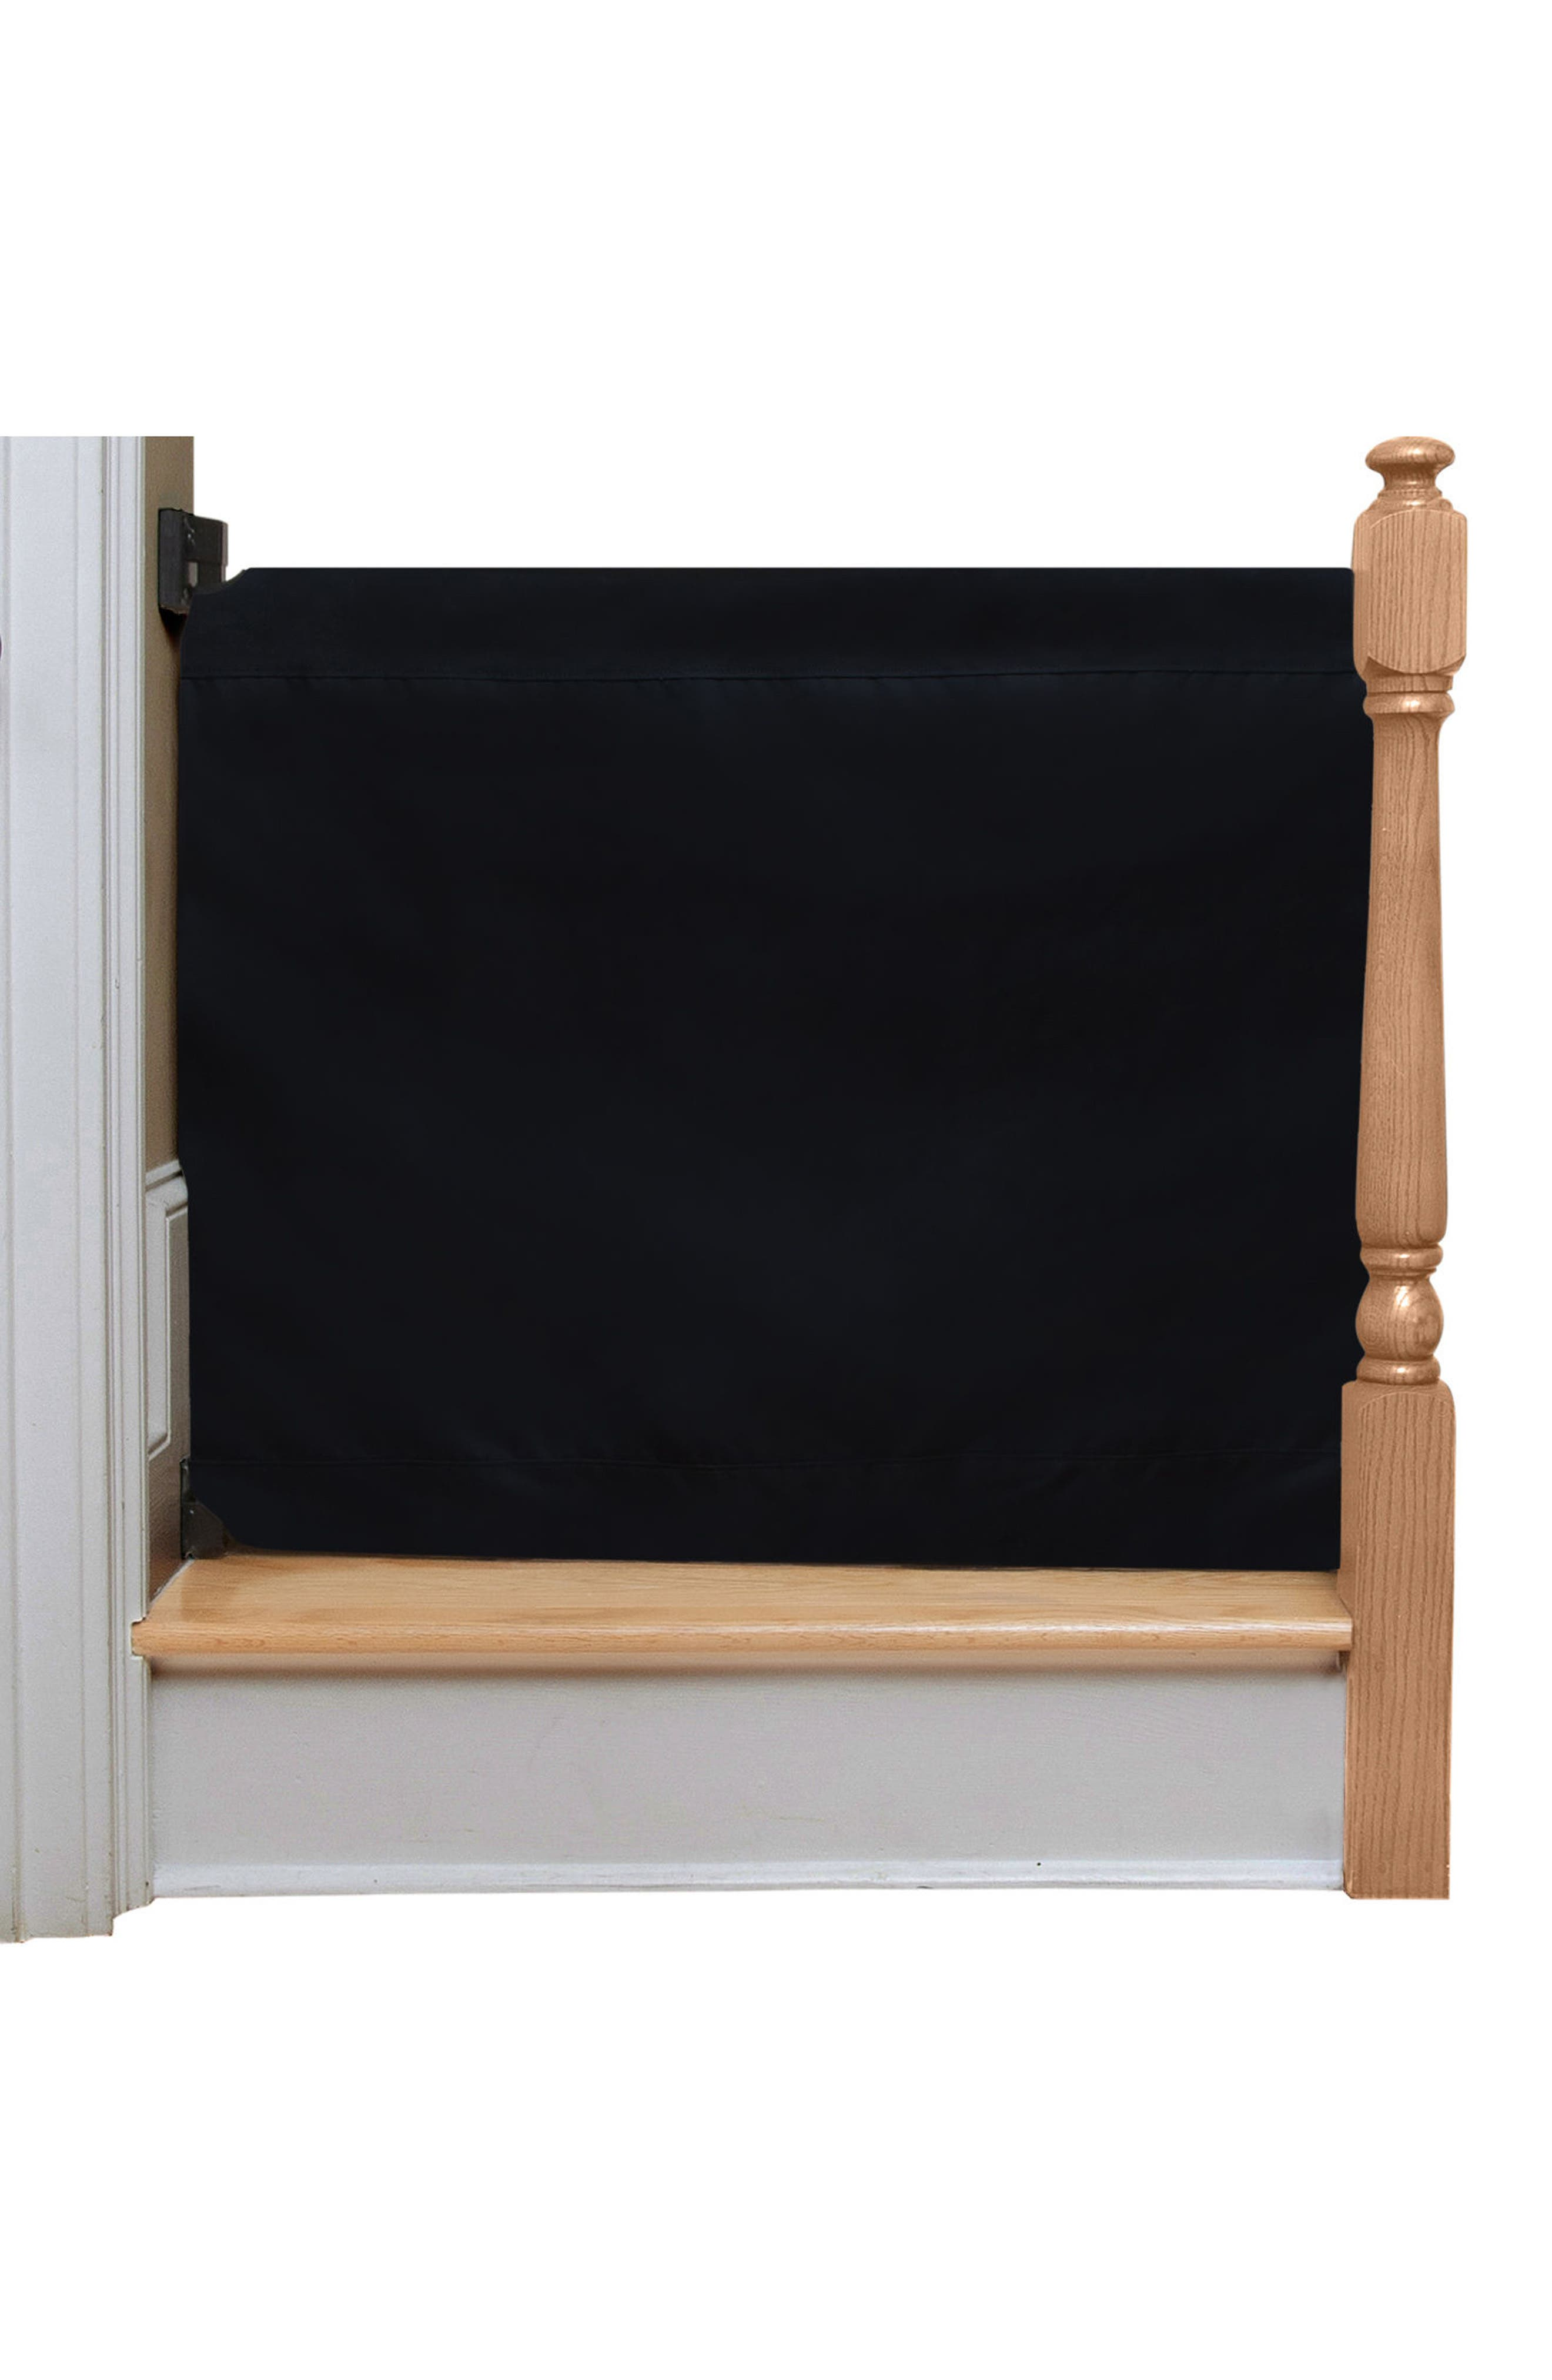 Wall to Banister Indoor Outdoor Safety Gate,                         Main,                         color, Black